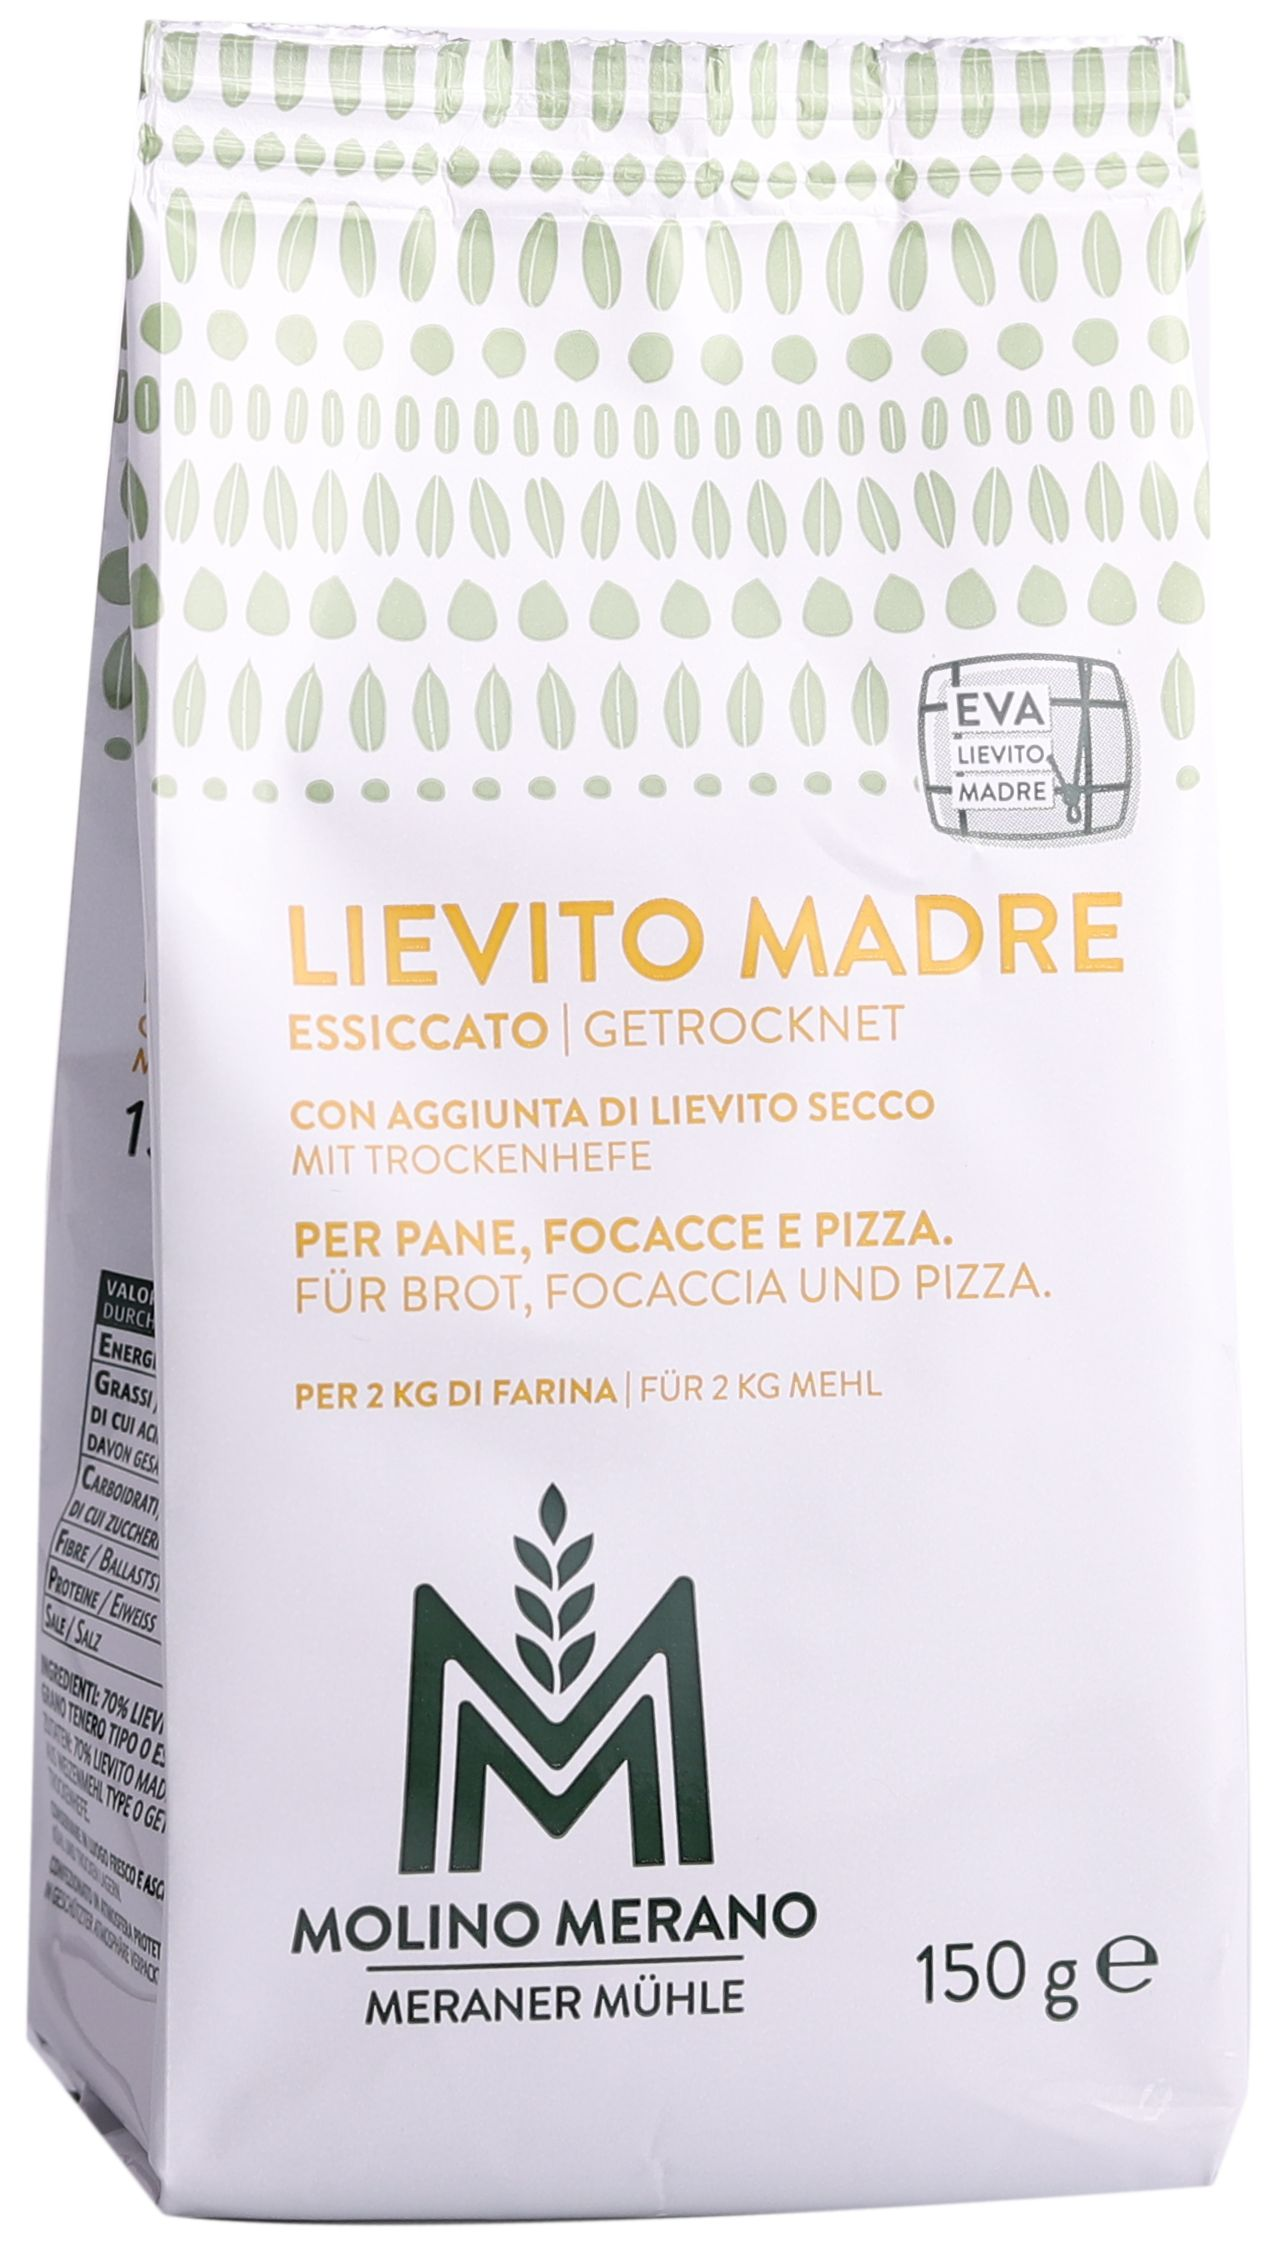 Lievito madre natural yeast with dried yeast